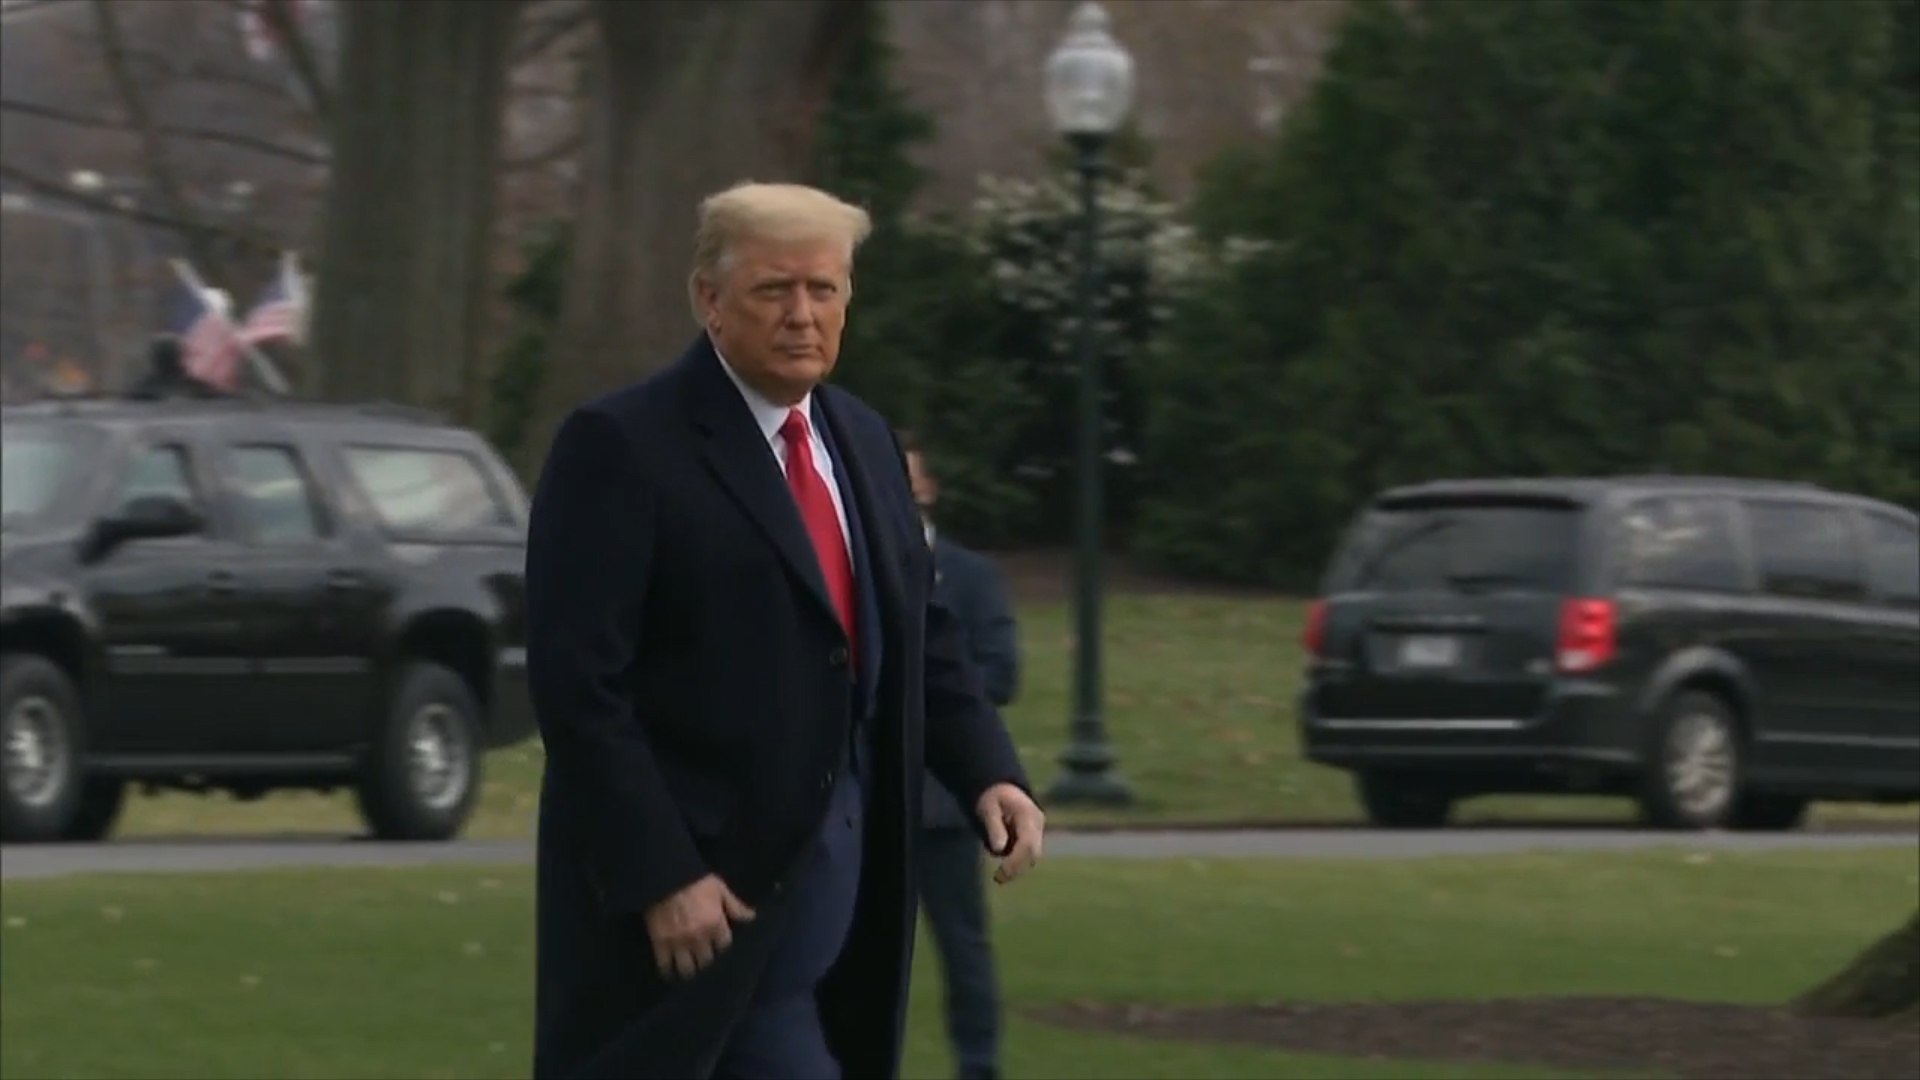 Congress May Move to Impeach - ABC23